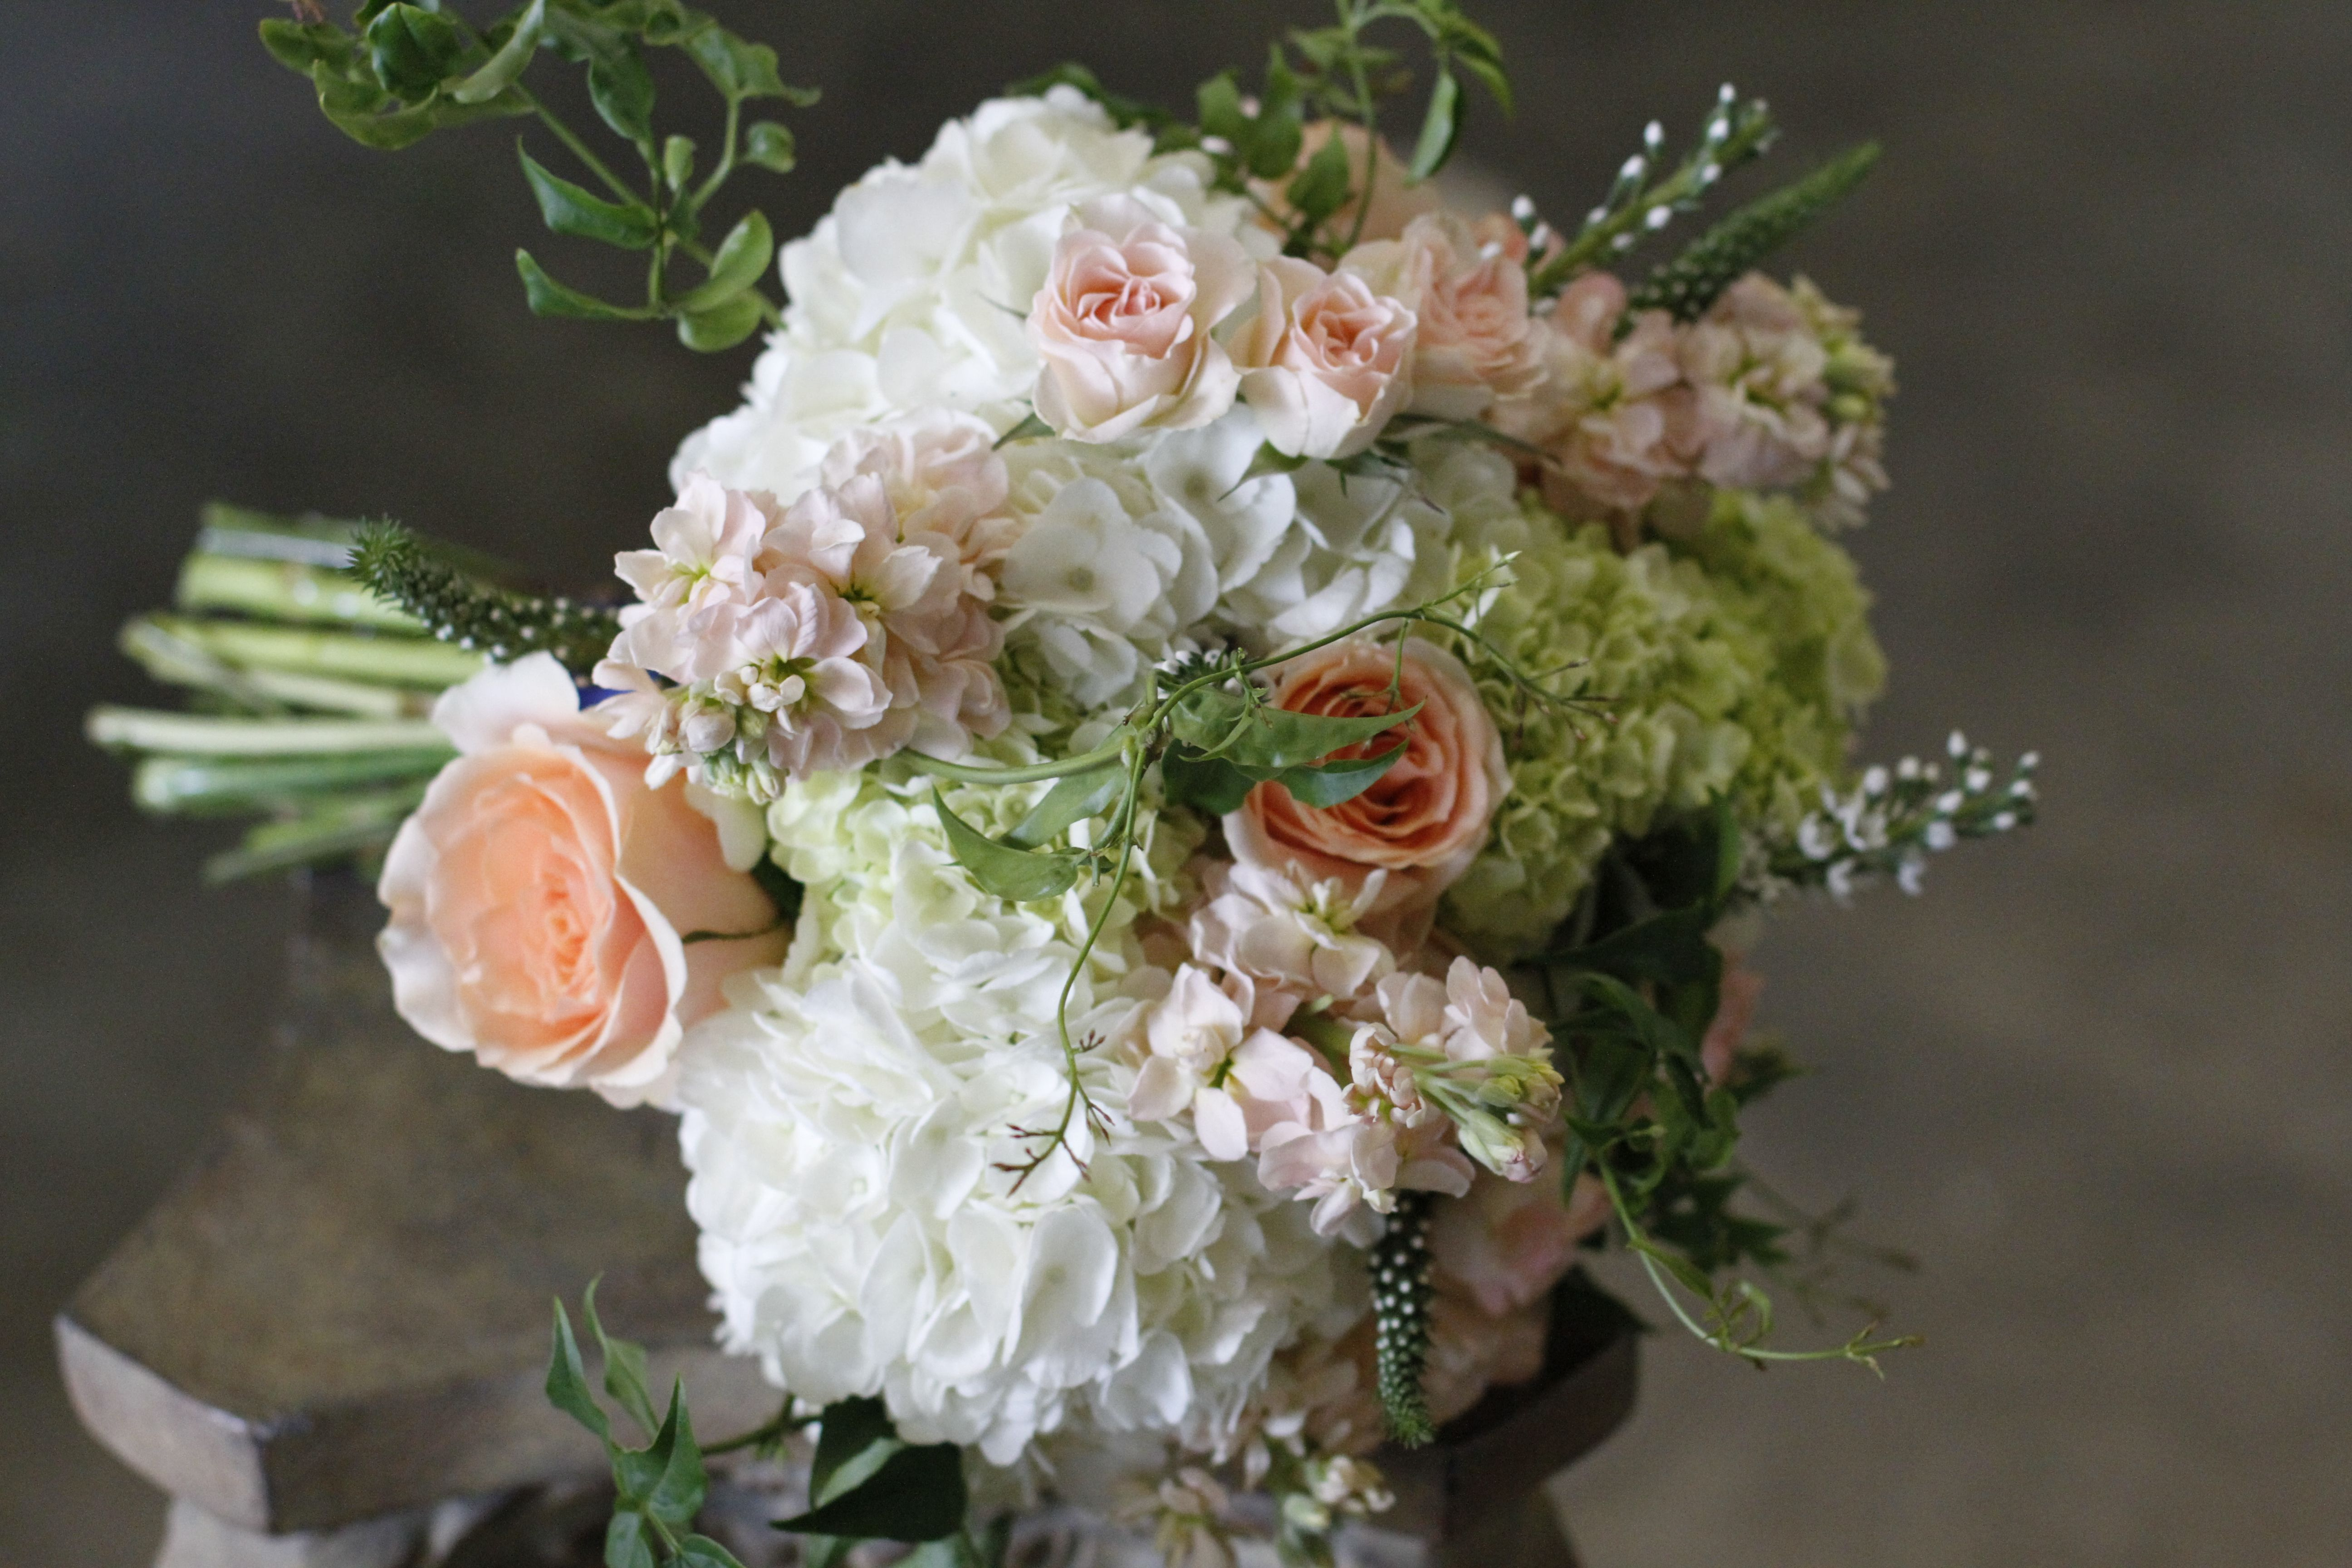 Peach Bouquet With Wedding Flowers Like Veronica Stock And Tea Roses Dallas